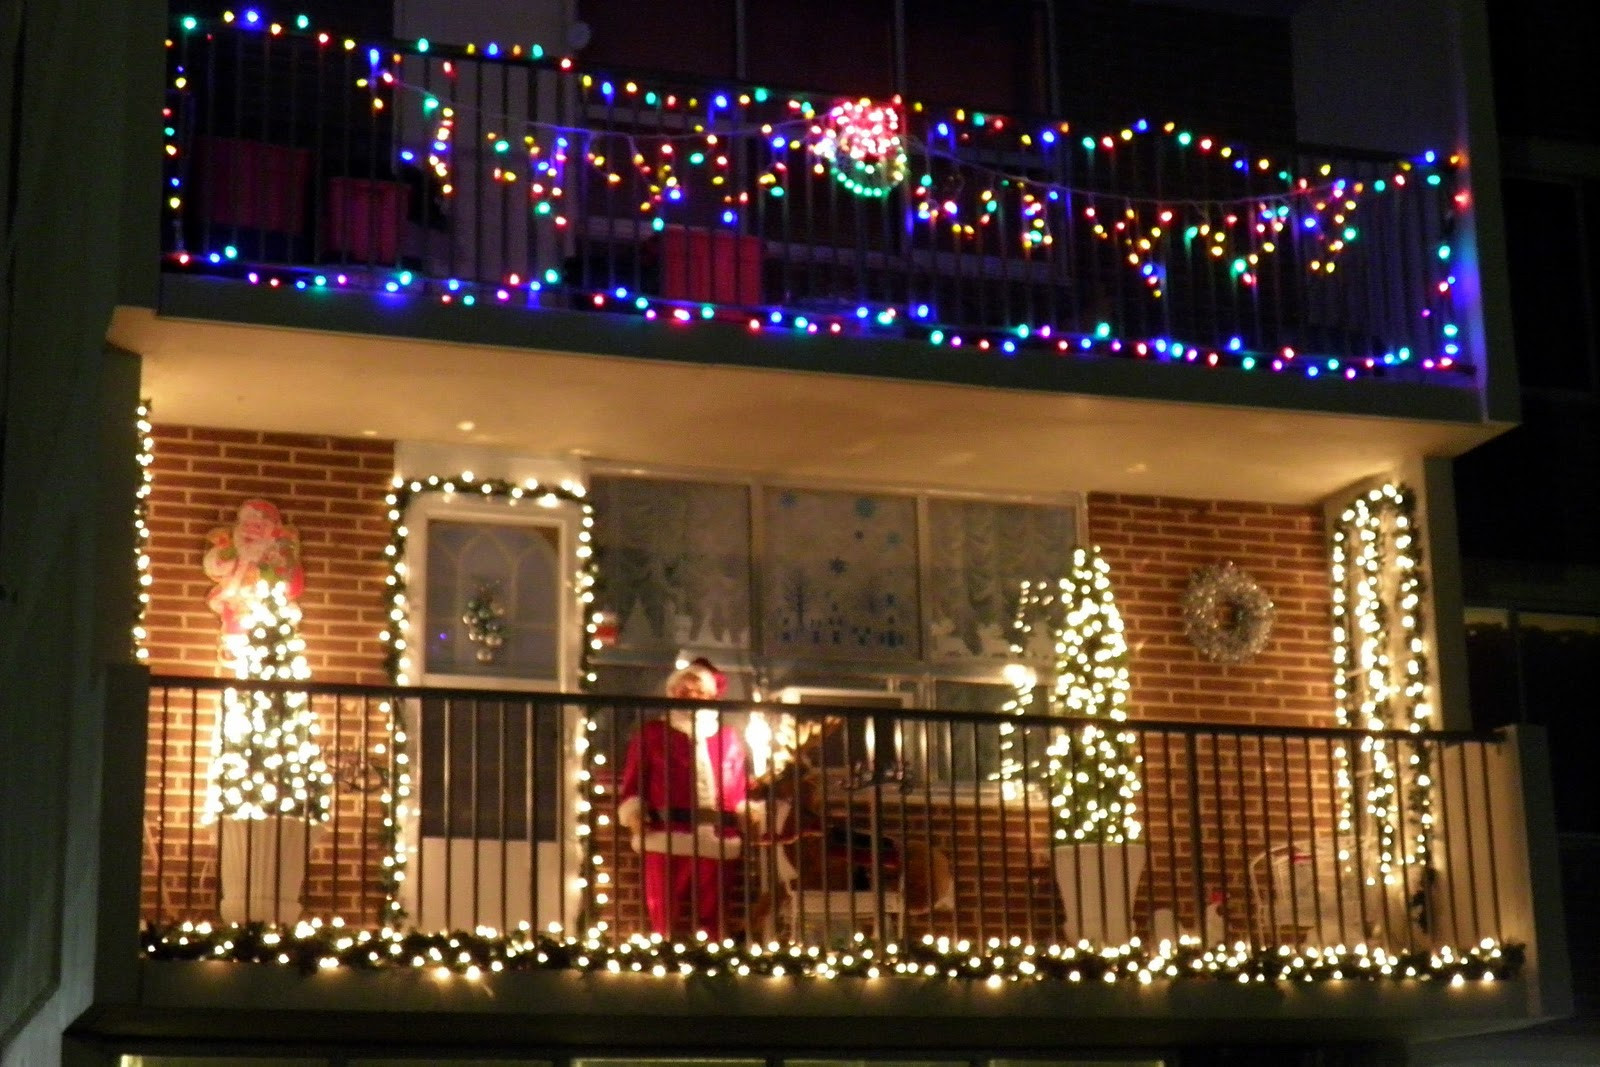 Apartment Patio Christmas Decorating Ideas  White Oaks munity It s beginning to look a lot like